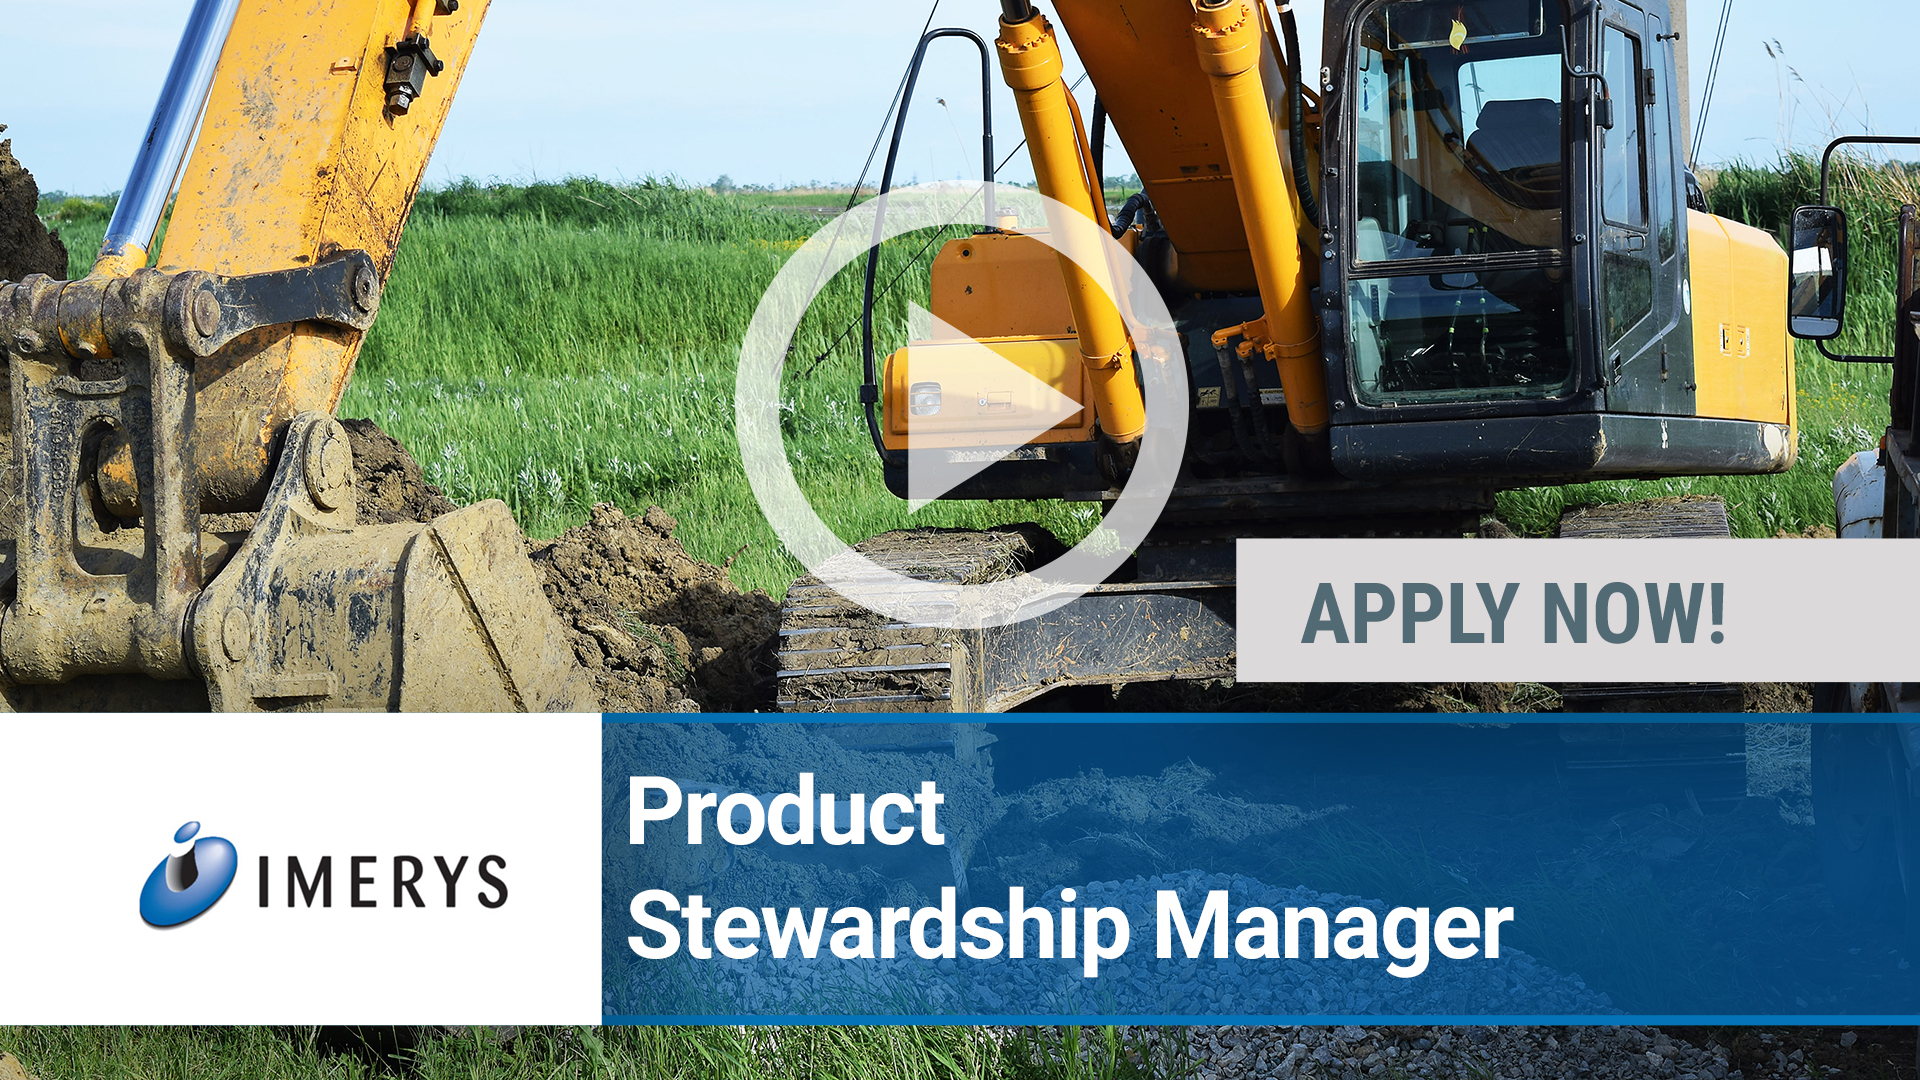 Watch our careers video for available job opening Product Stewardship Manager in Denver, CO, USA